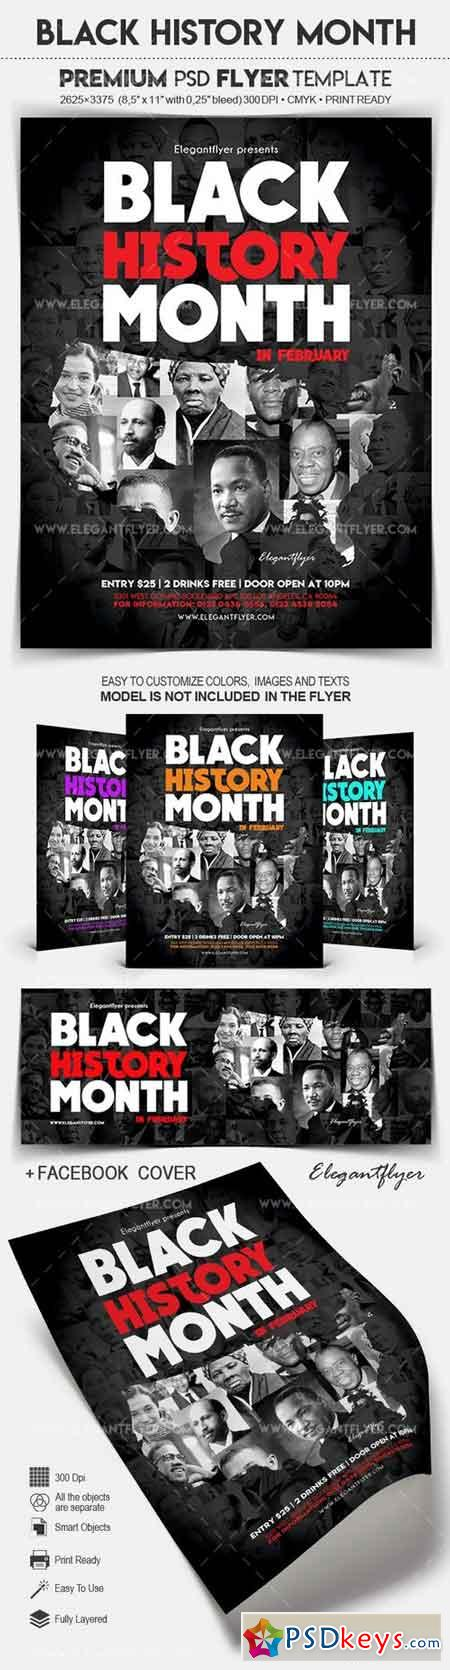 Black History Month Flyer Psd Template Facebook Cover Free